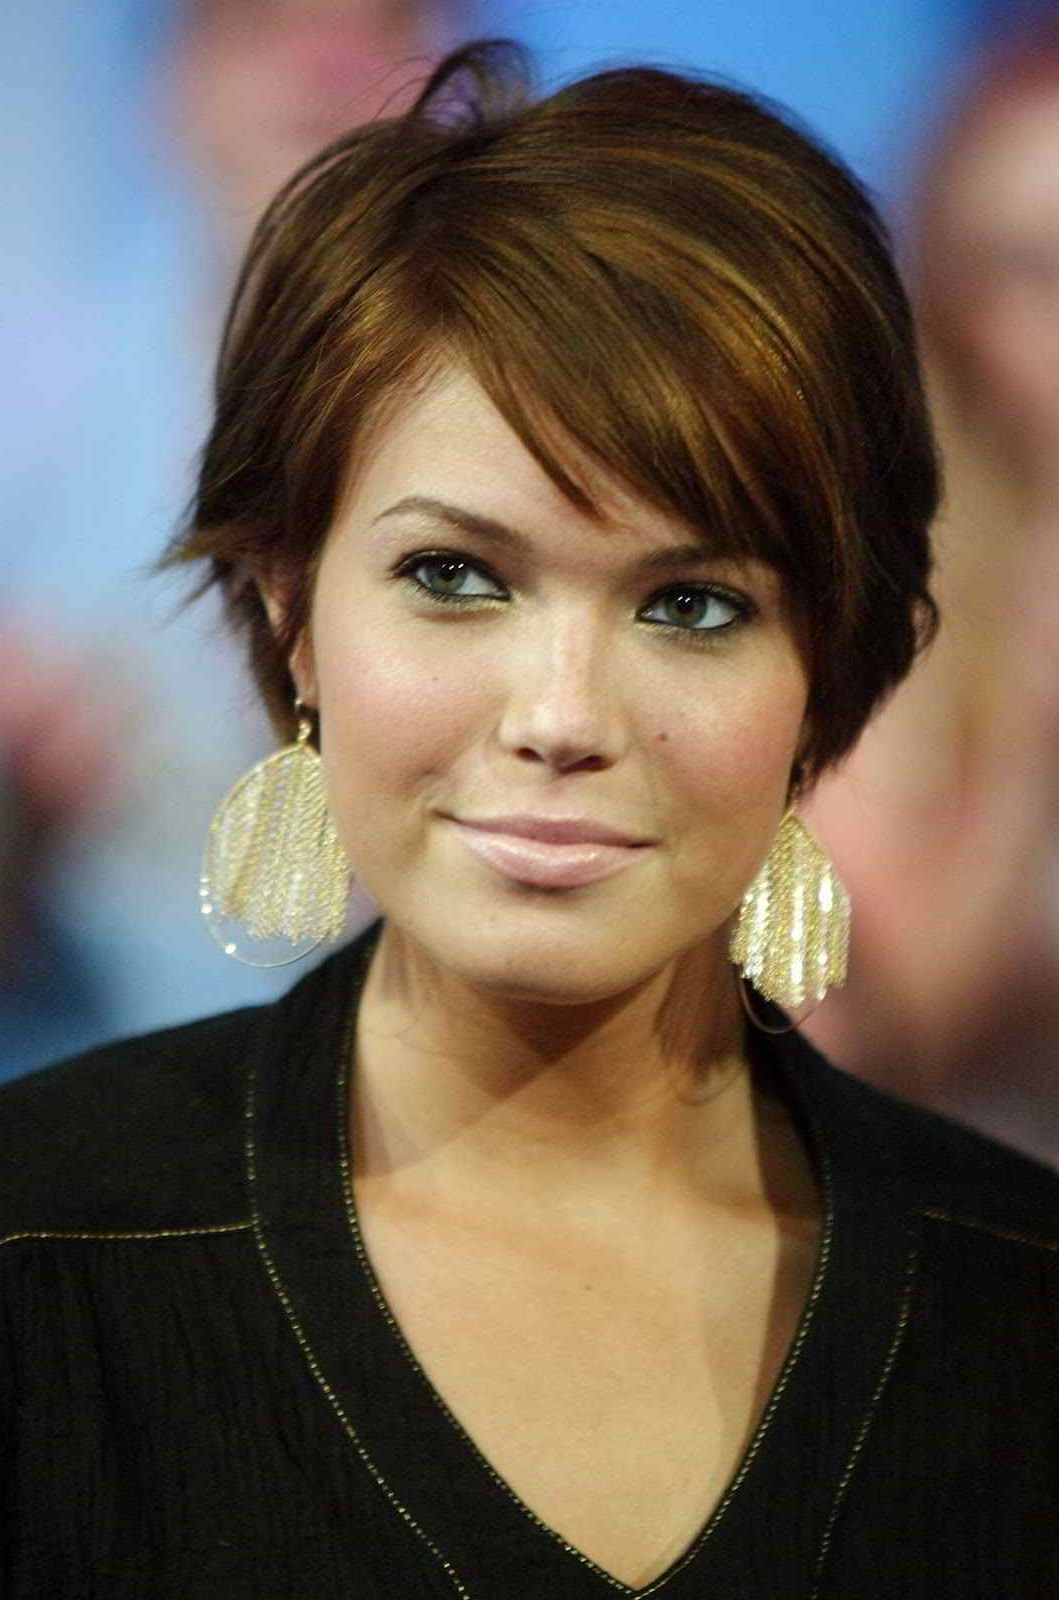 Hairstyles With Height And Fullness At The Crown – Google Search Intended For Preferred Layered Haircuts With Cropped Locks On The Crown (View 10 of 20)